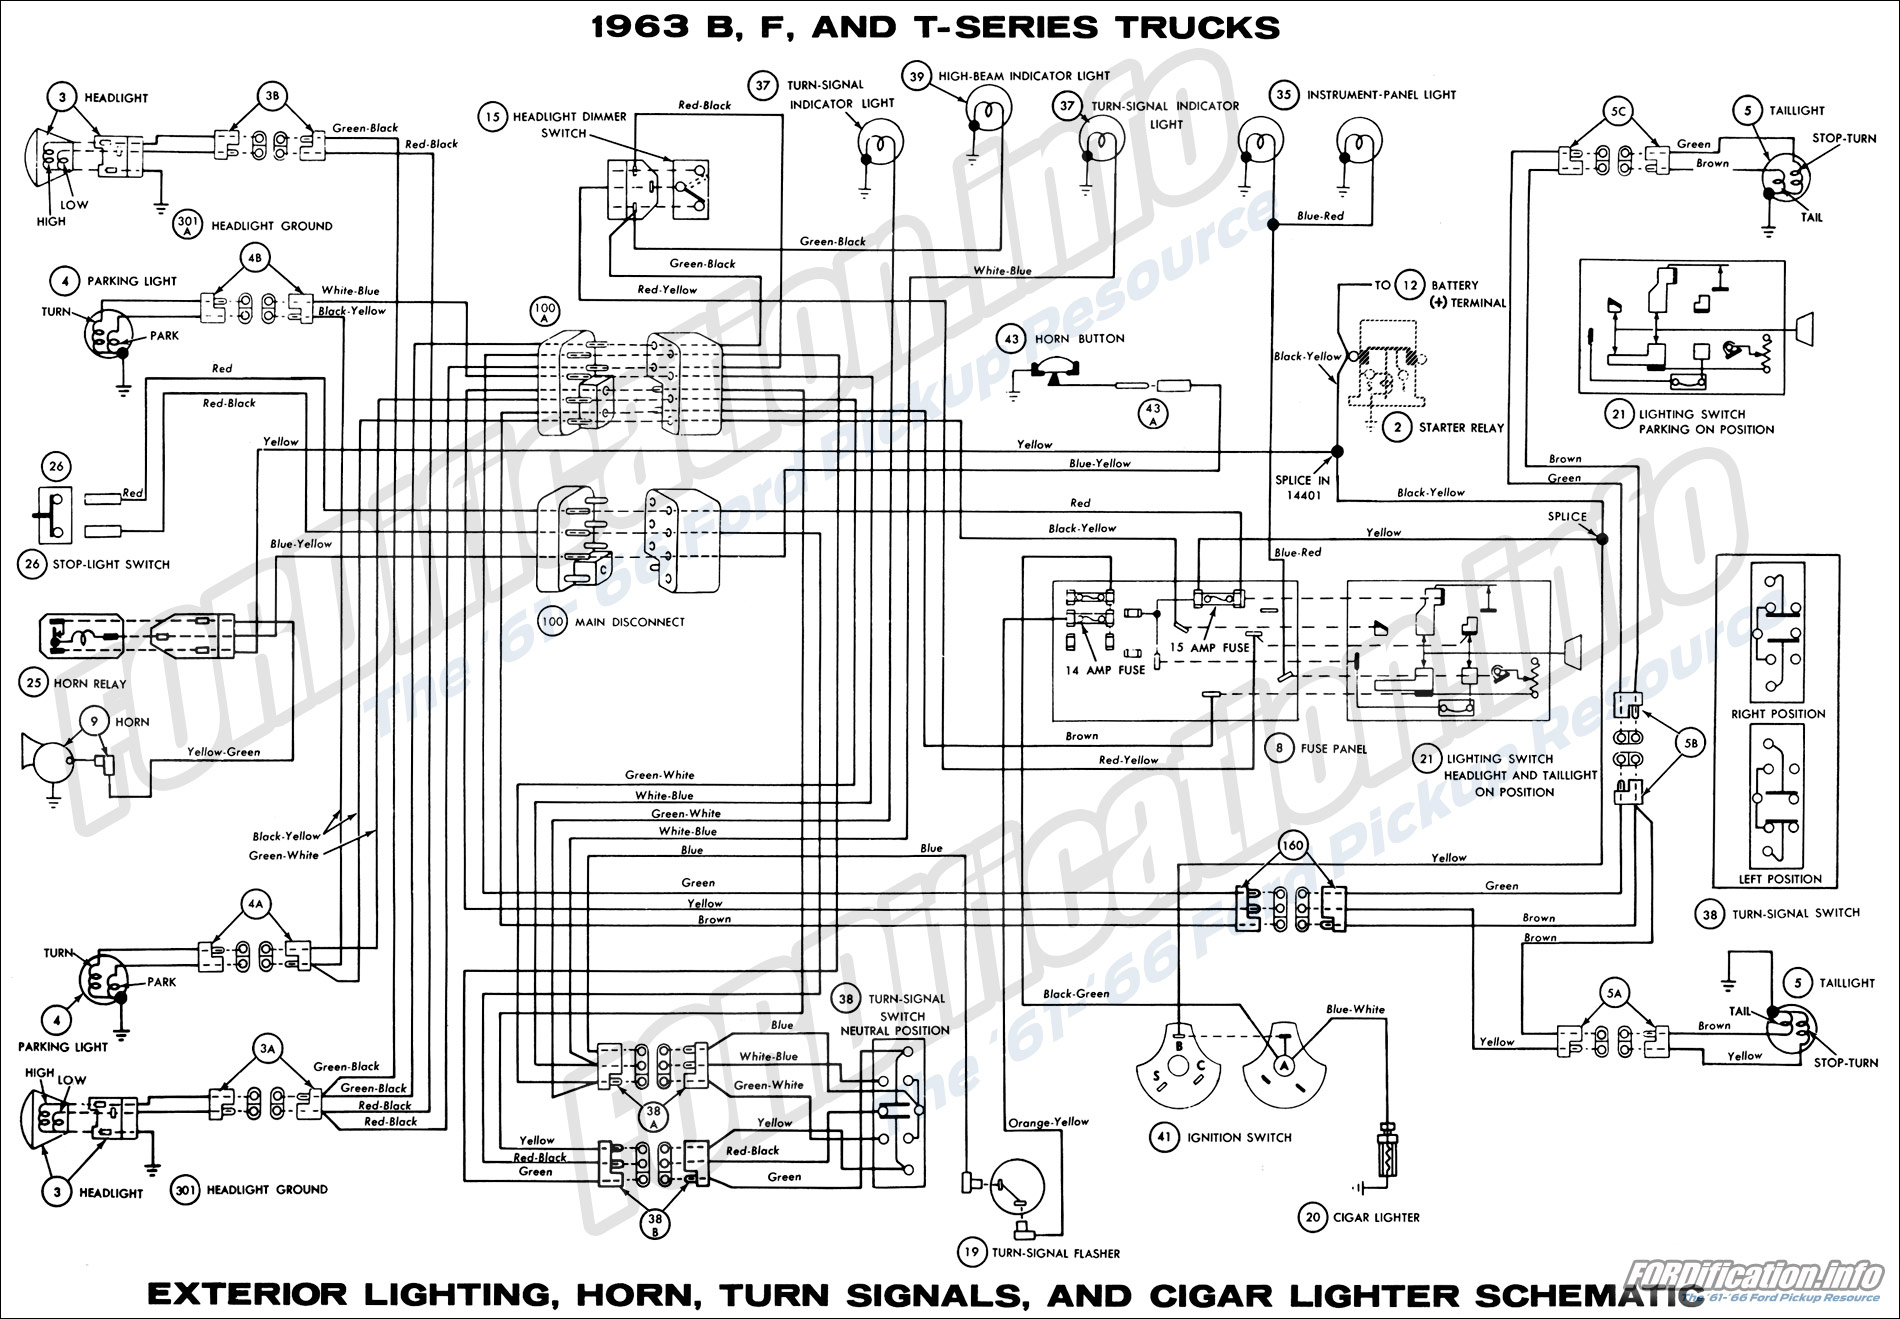 hight resolution of 1963 ford f100 wiring diagram another blog about wiring diagram u2022 rh ok2 infoservice ru 61 61 67 ford econoline